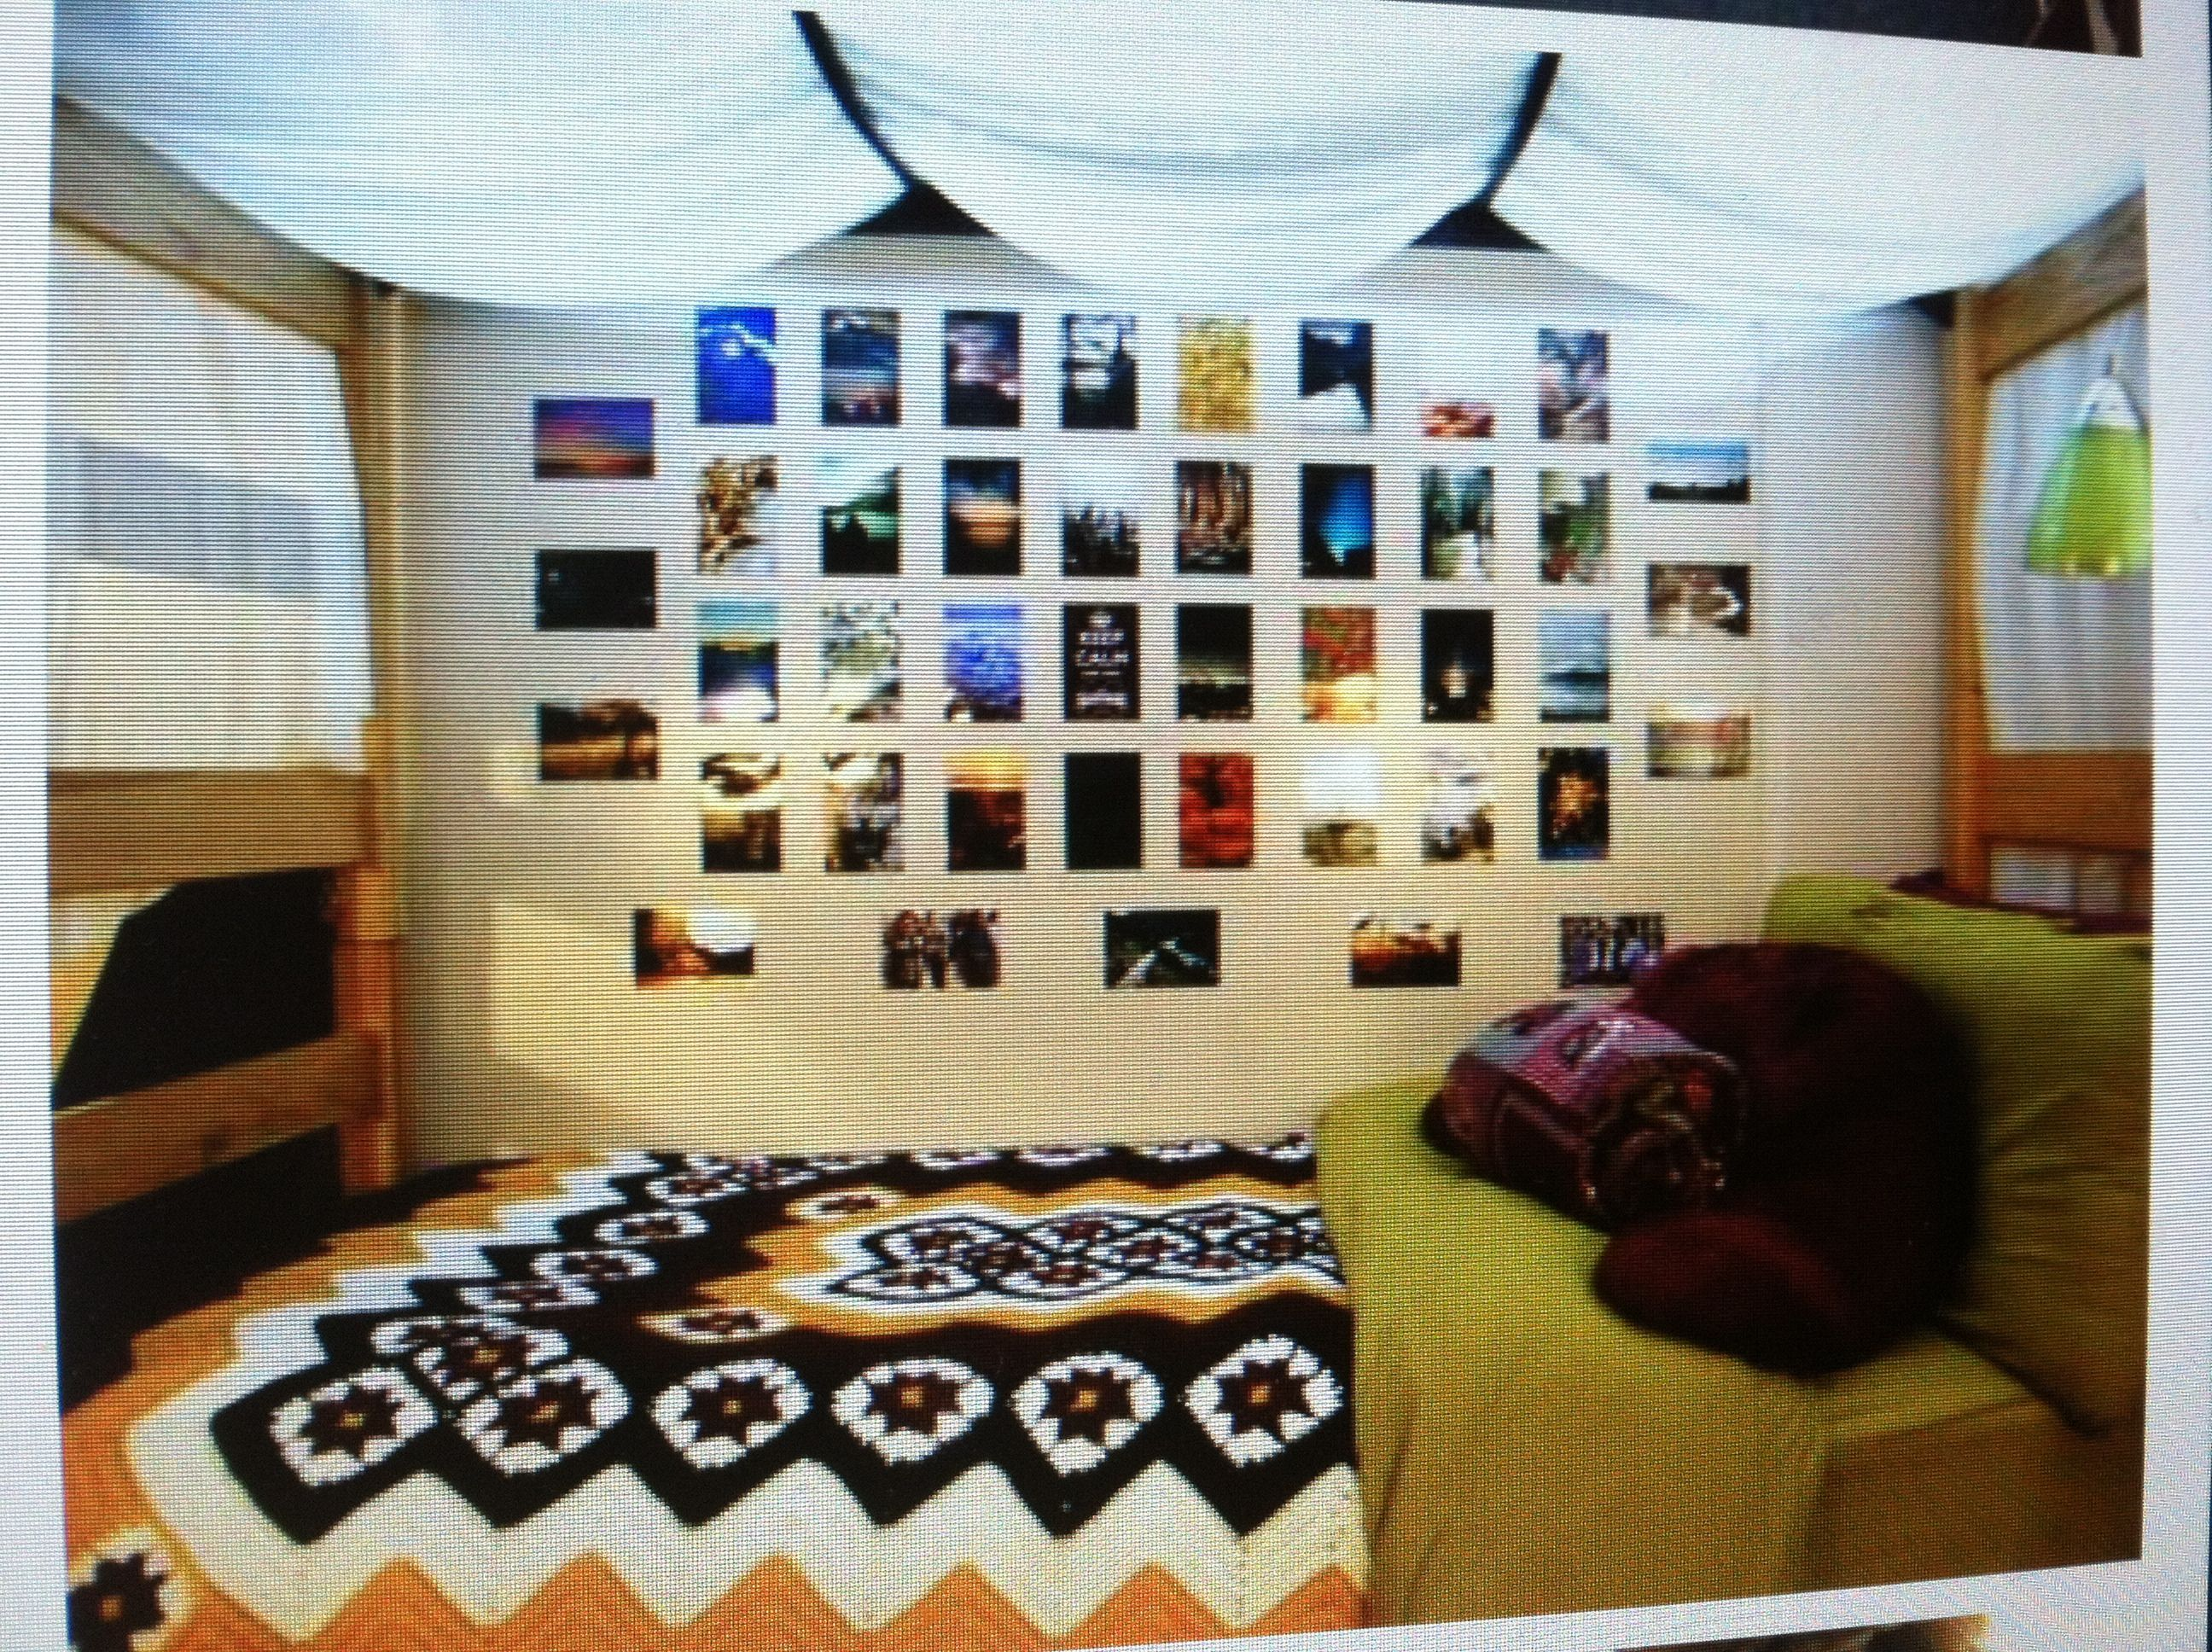 dorm style freshman 15 dorm dorm room college dorm rooms rh pinterest com